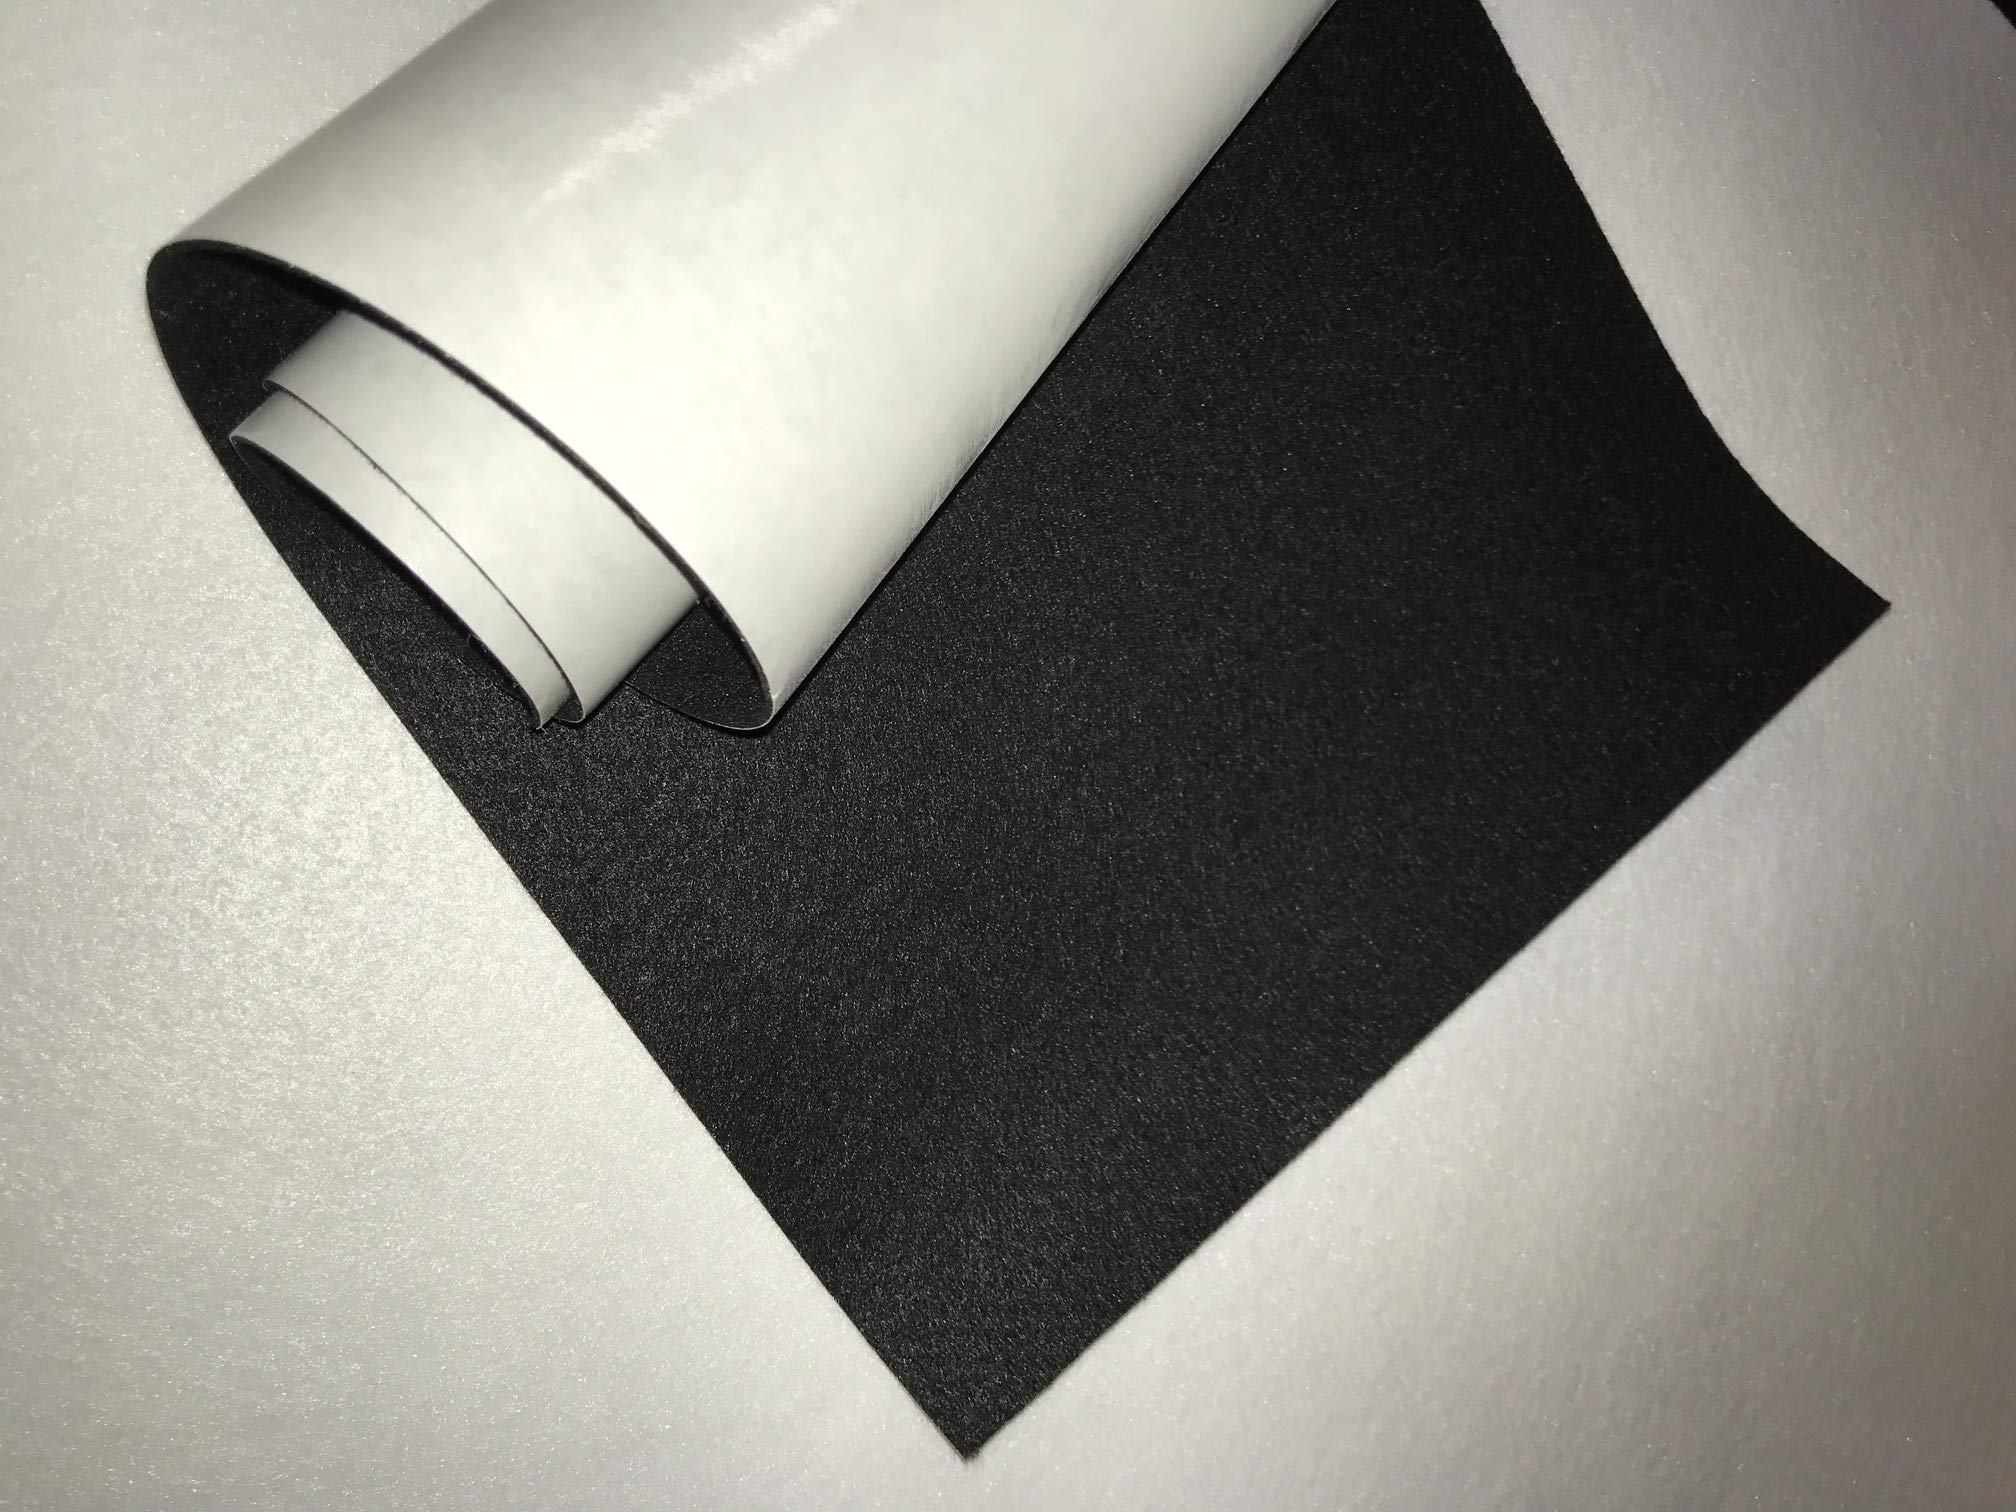 24'' X 36'' ROLL 1/16'' THICK SELF ADHESIVE PROTECTIVE FELT - No Scratch - Premium Acrylic - Peel-N-Stick Arts & Crafts Counter Tops Displays Furniture 1001 Uses!